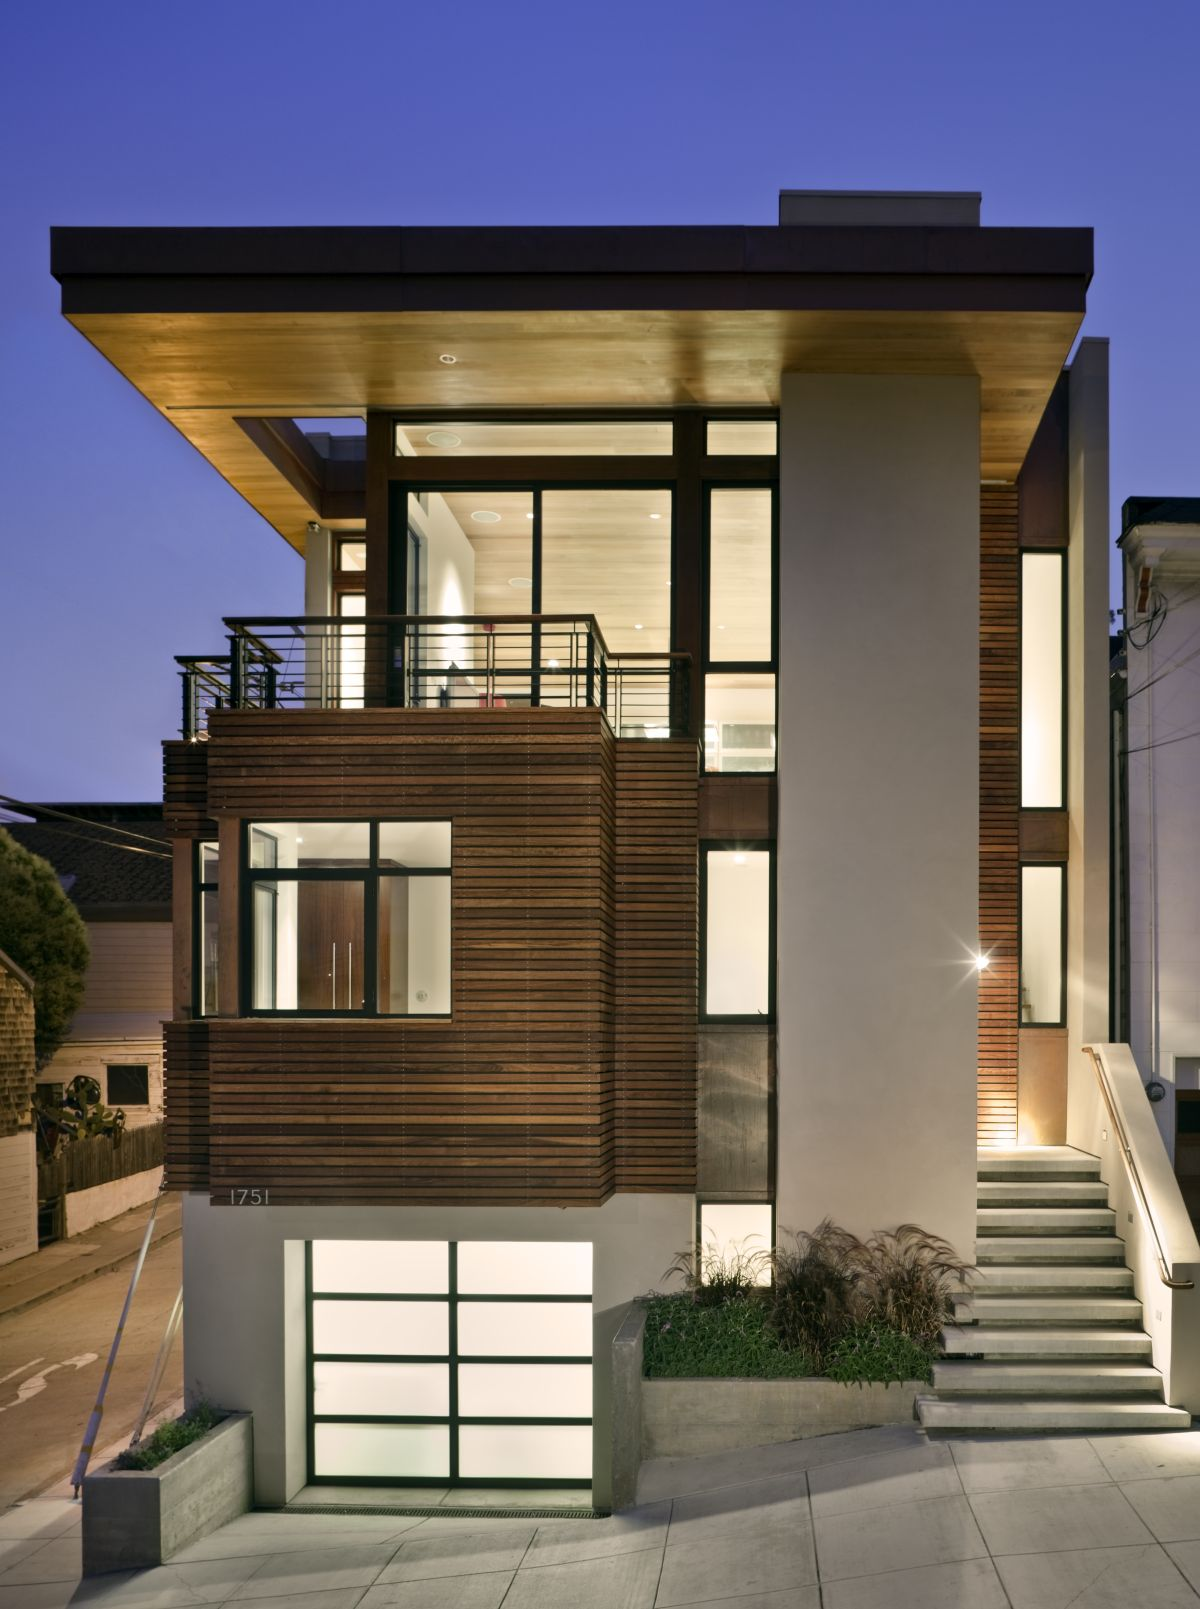 Bernal Heights Residence - SB Architects